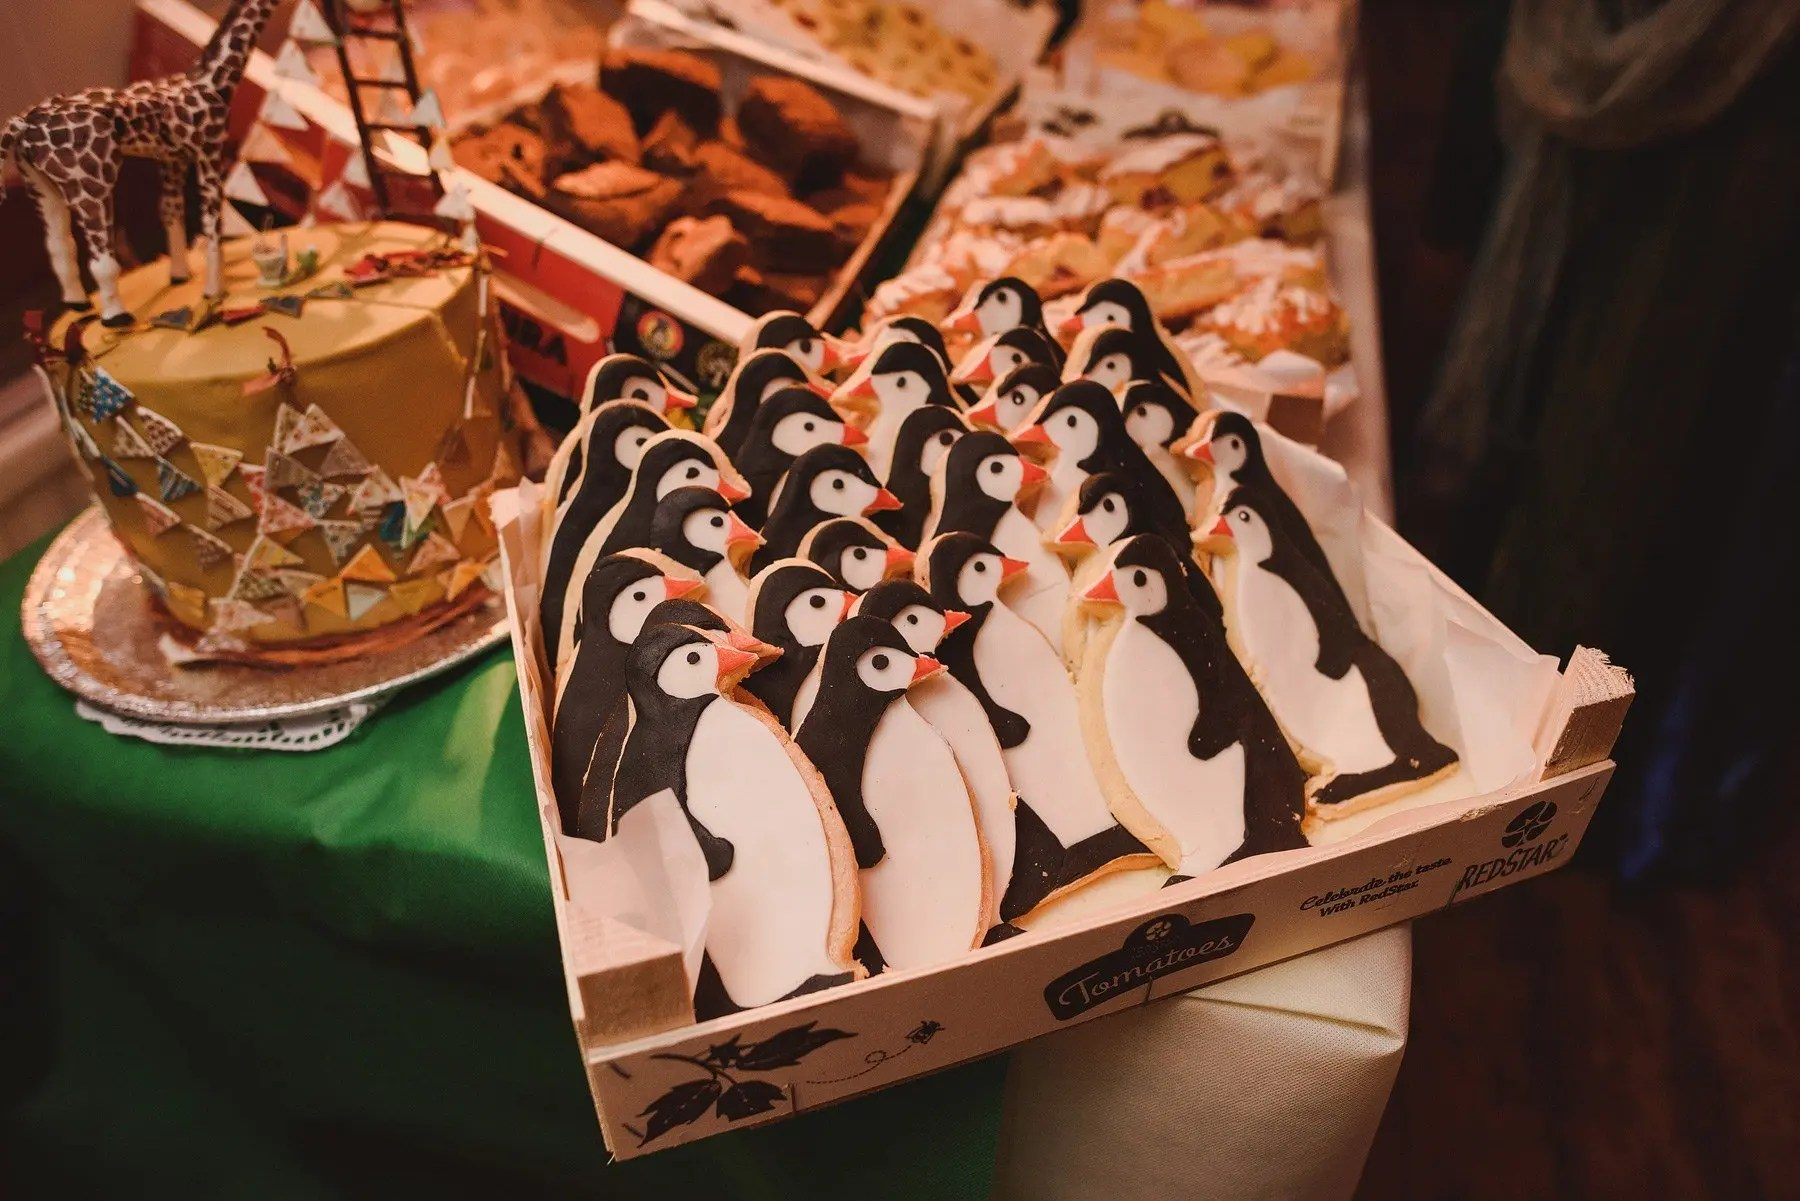 penguin biscuits at a wedding